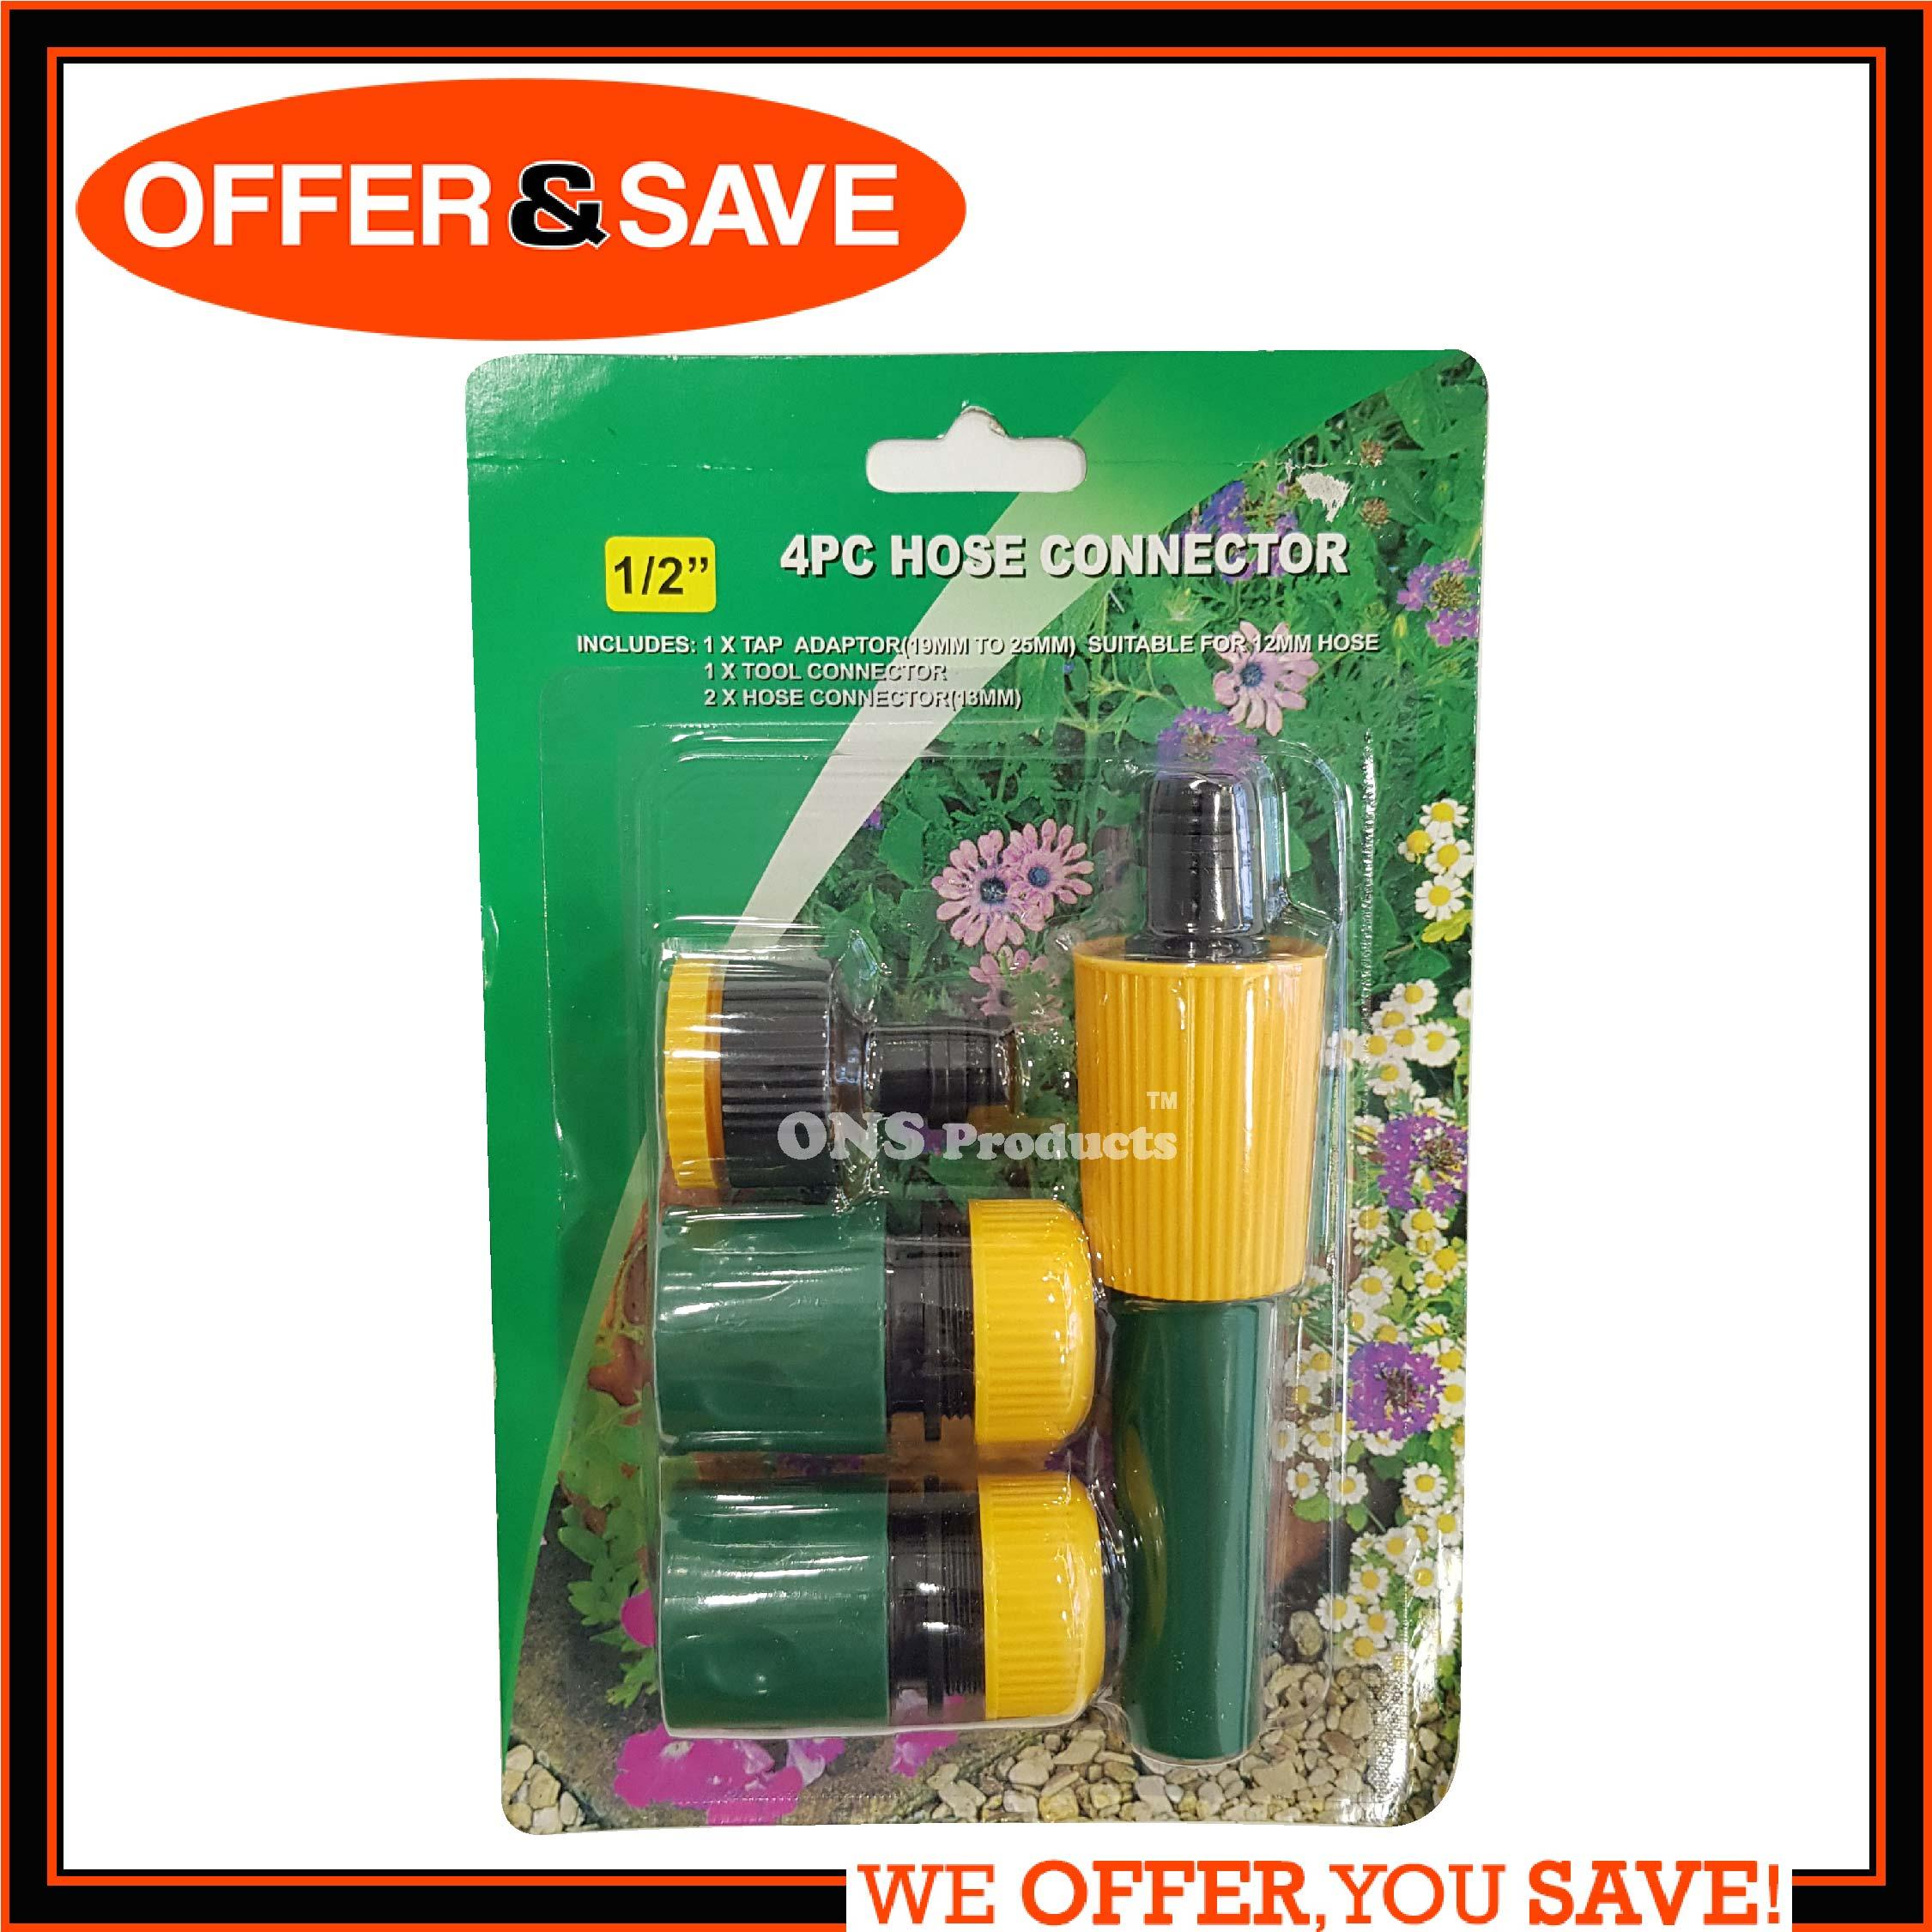 ONS 4pc Hose Connector / Garden Hose Tap Connector Accessory Fitting Water Sprayer Nozzle